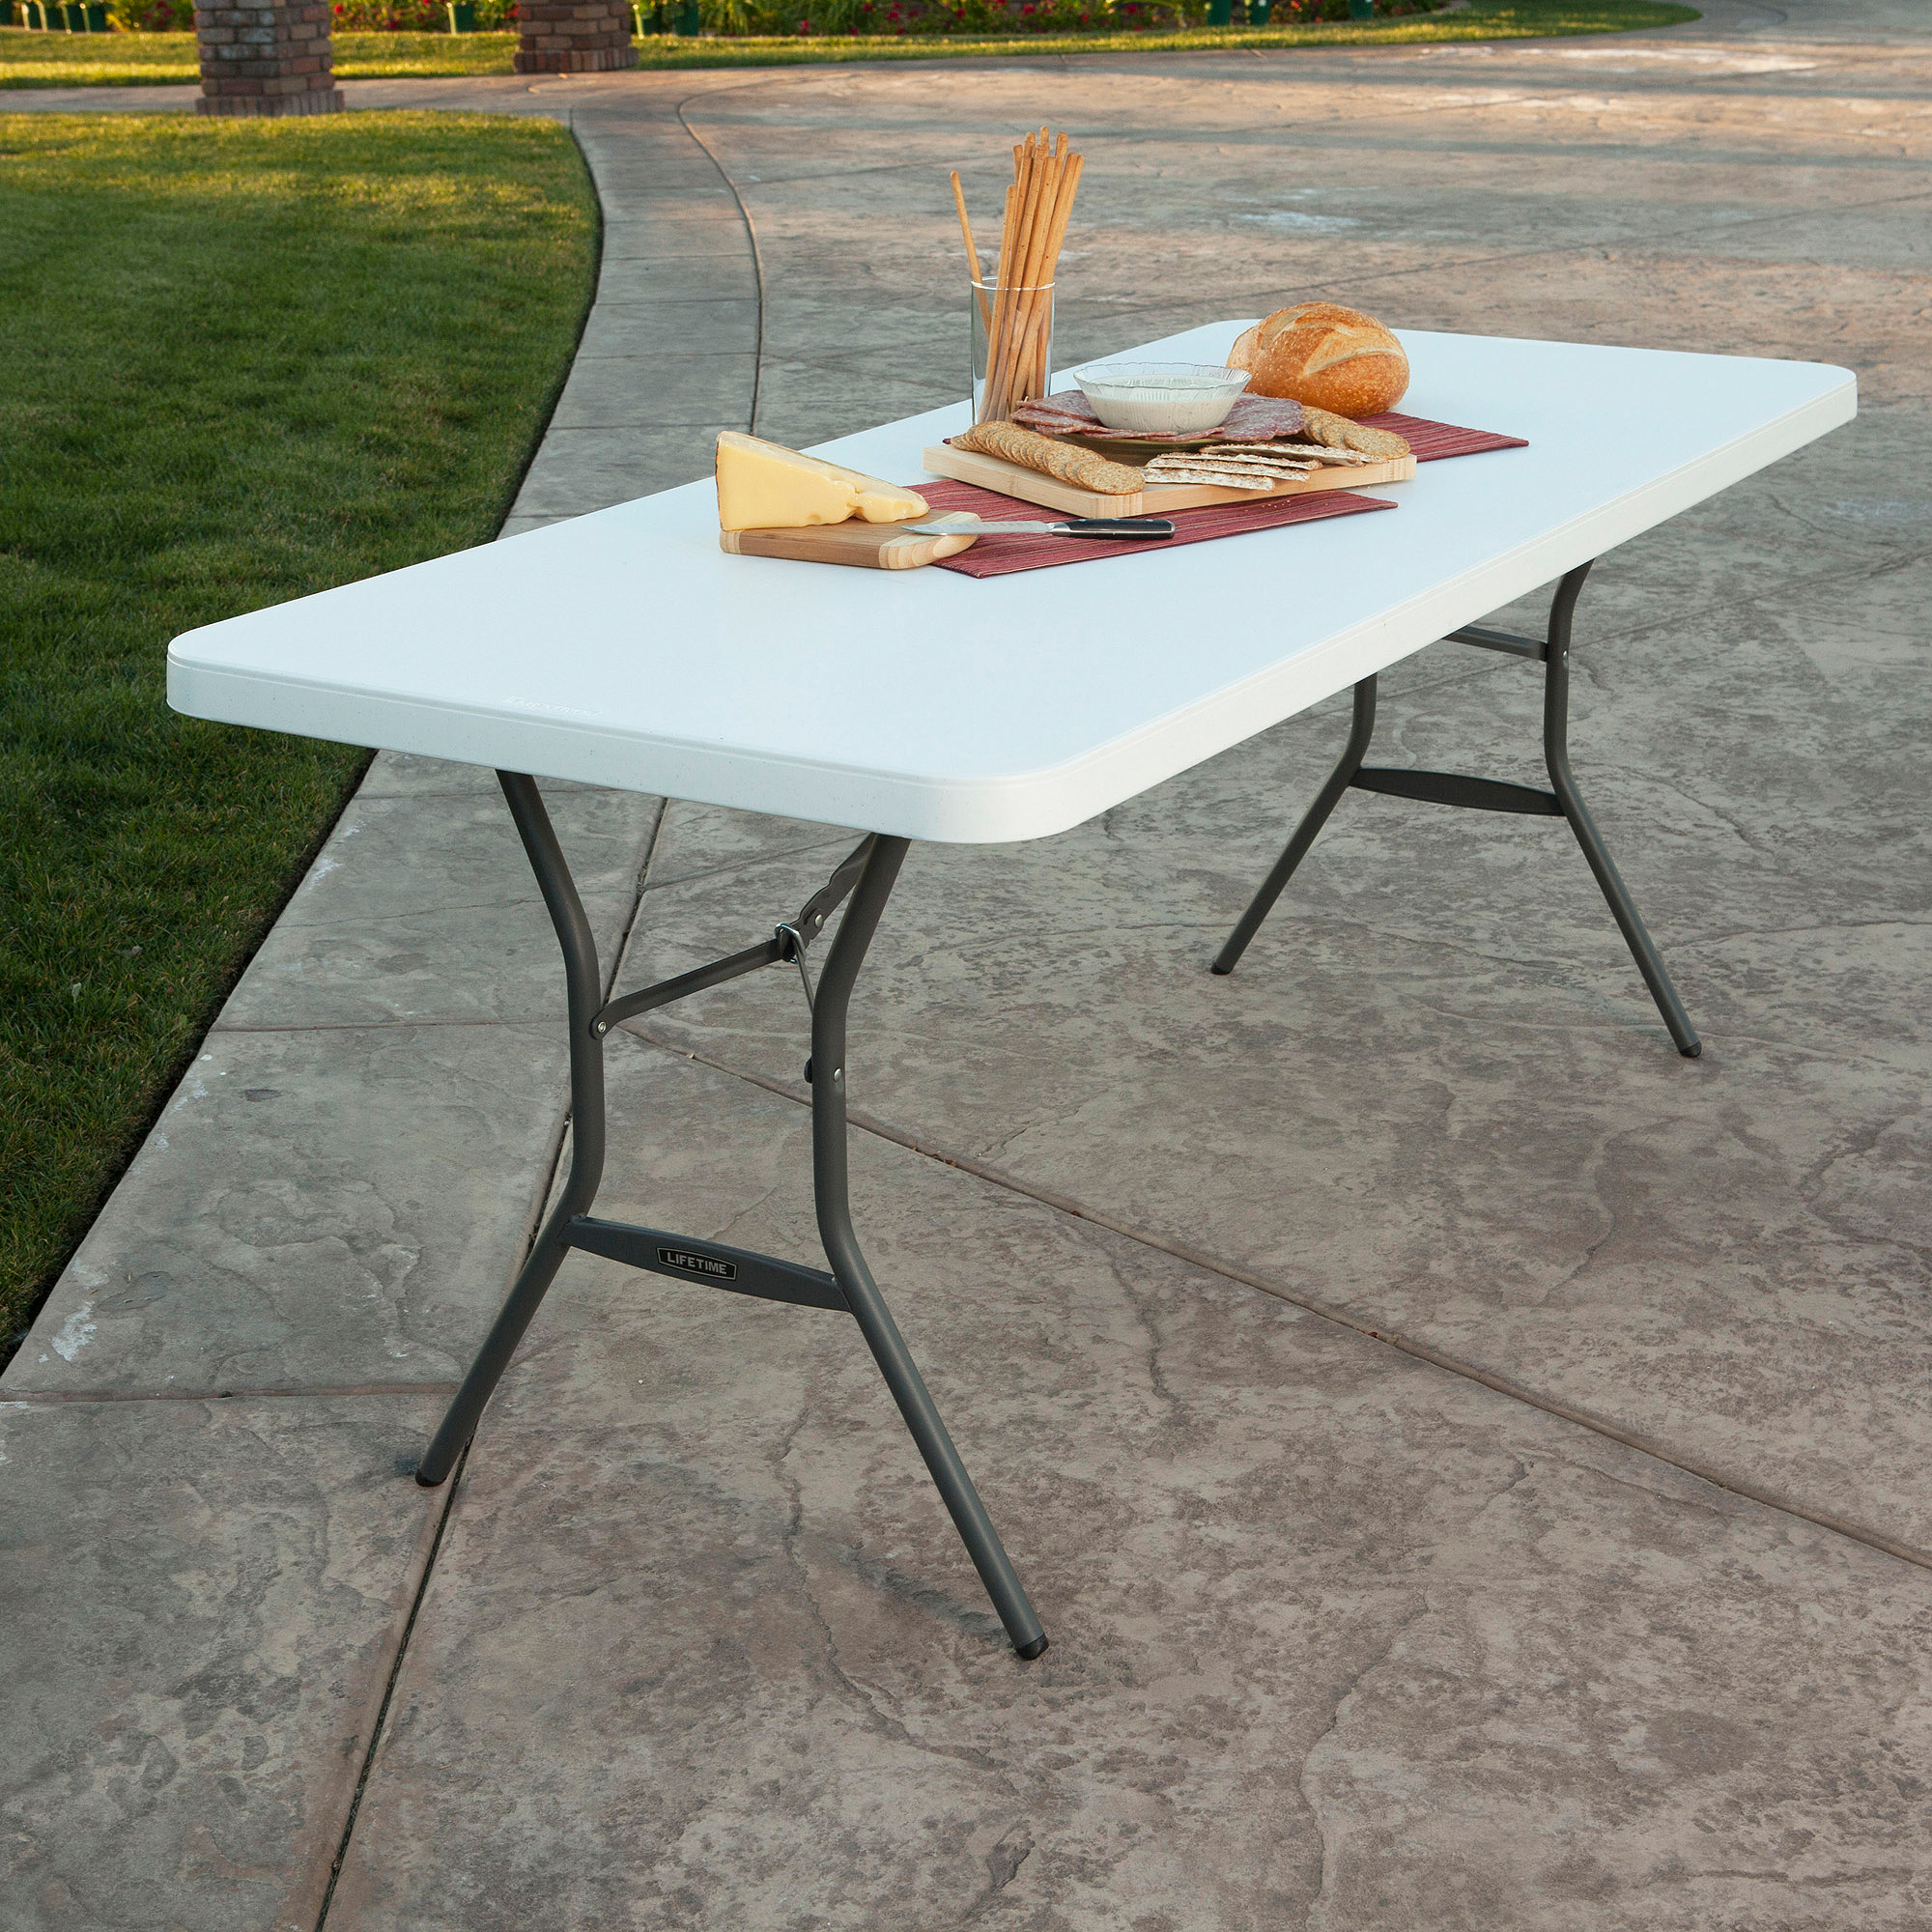 Lifetime 6' Fold-In-Half Table, White Granite